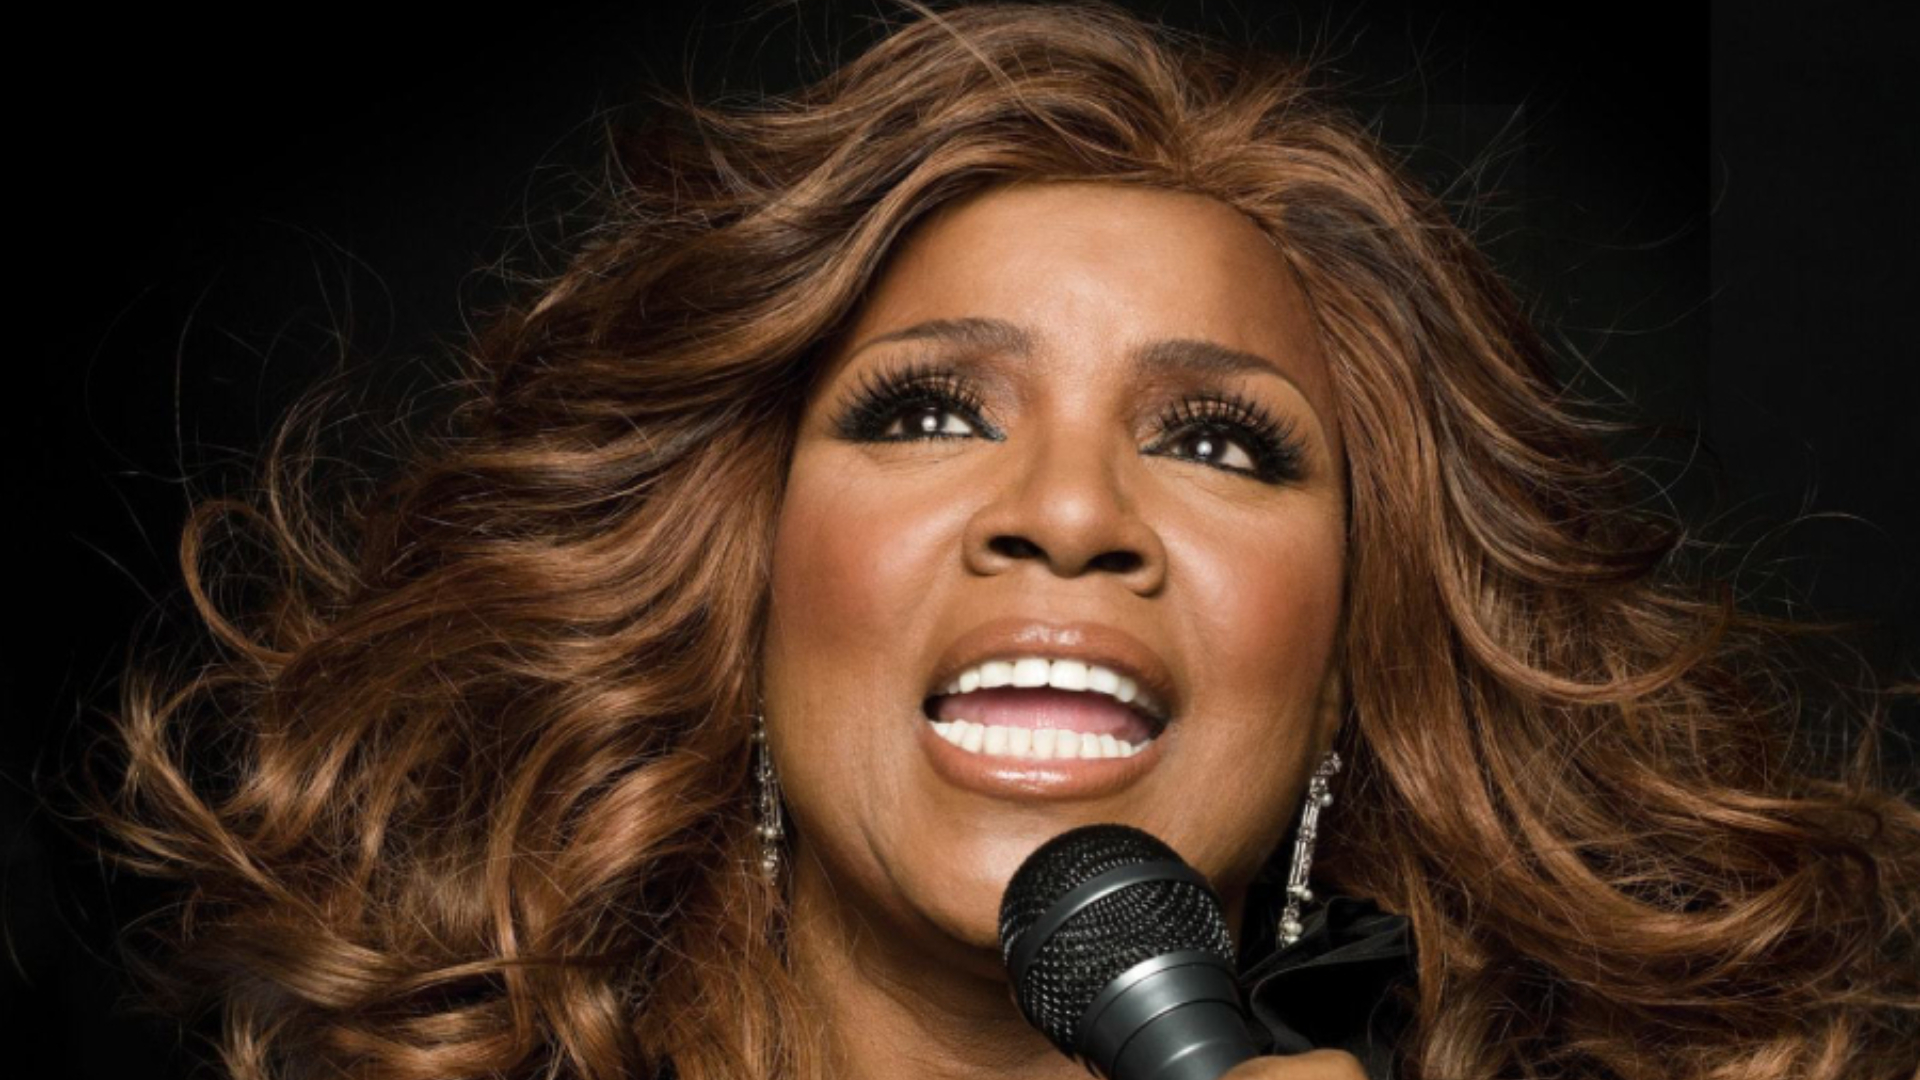 The Queen Of Disco Ms. Gloria Gaynor will be on stage at Yalıkavak Marina.